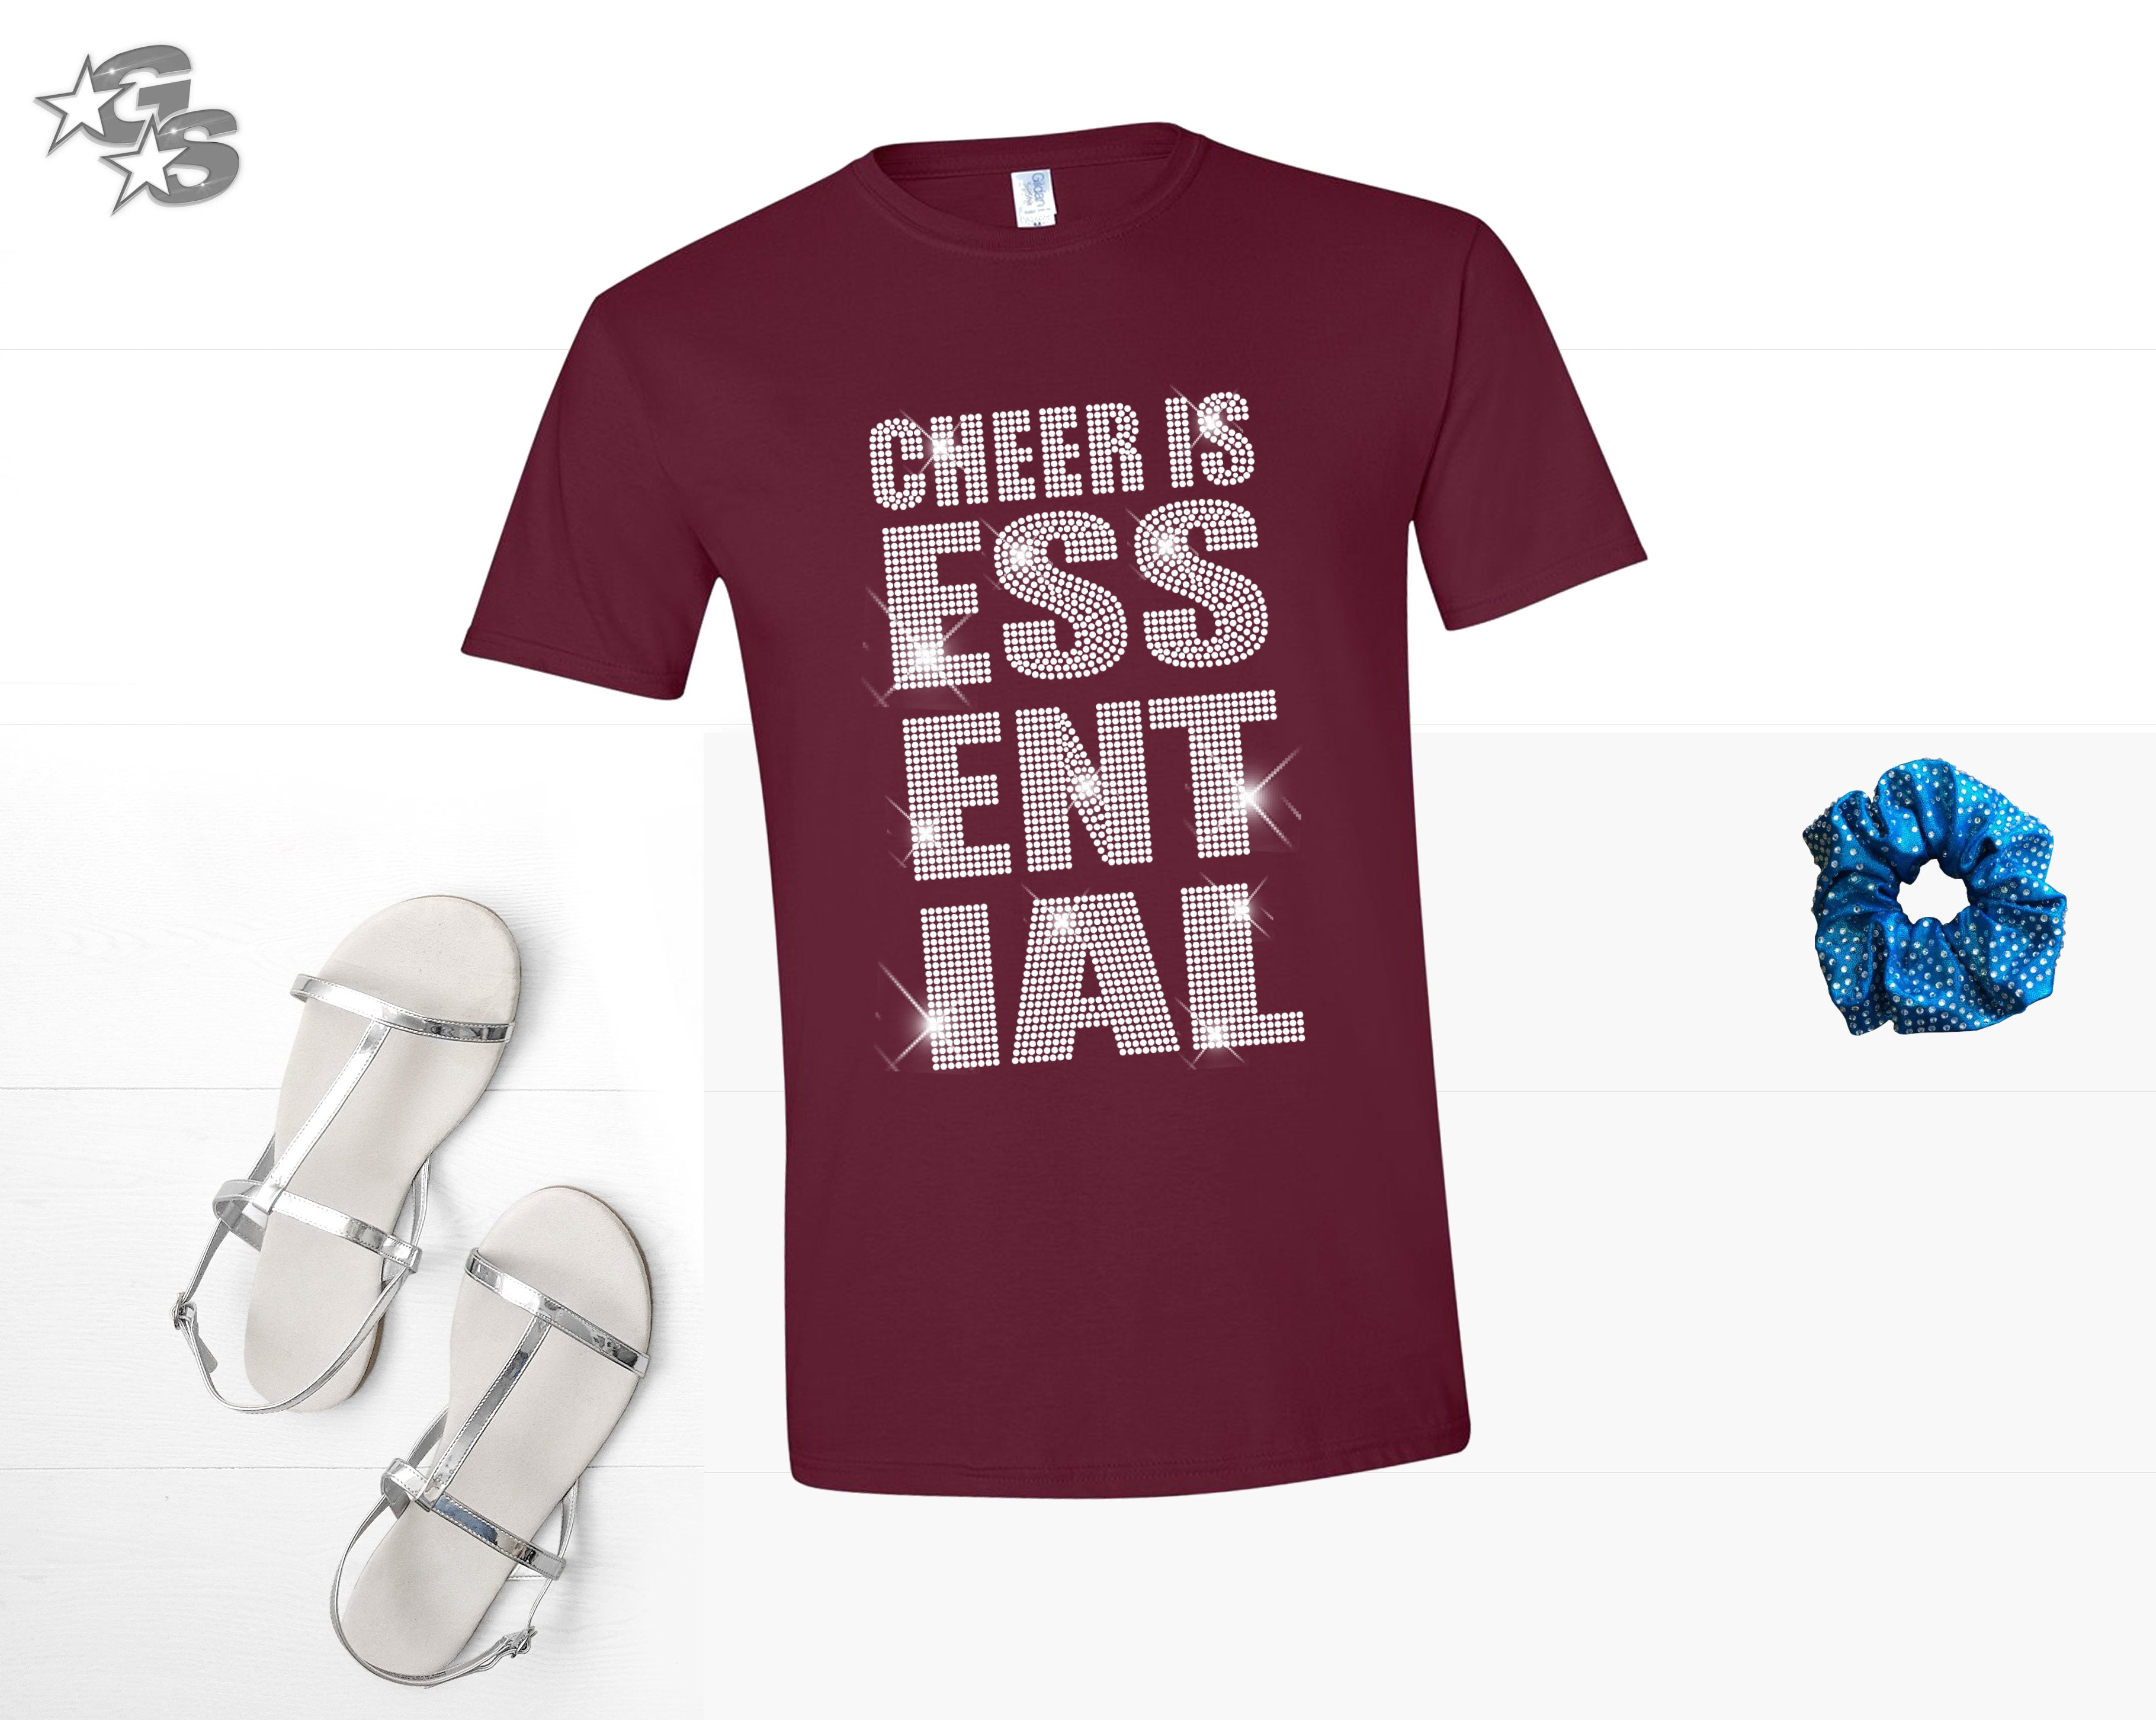 Cheer is Essential - Maroon Shirt - Cheer FX (Bling) - No Hashtag